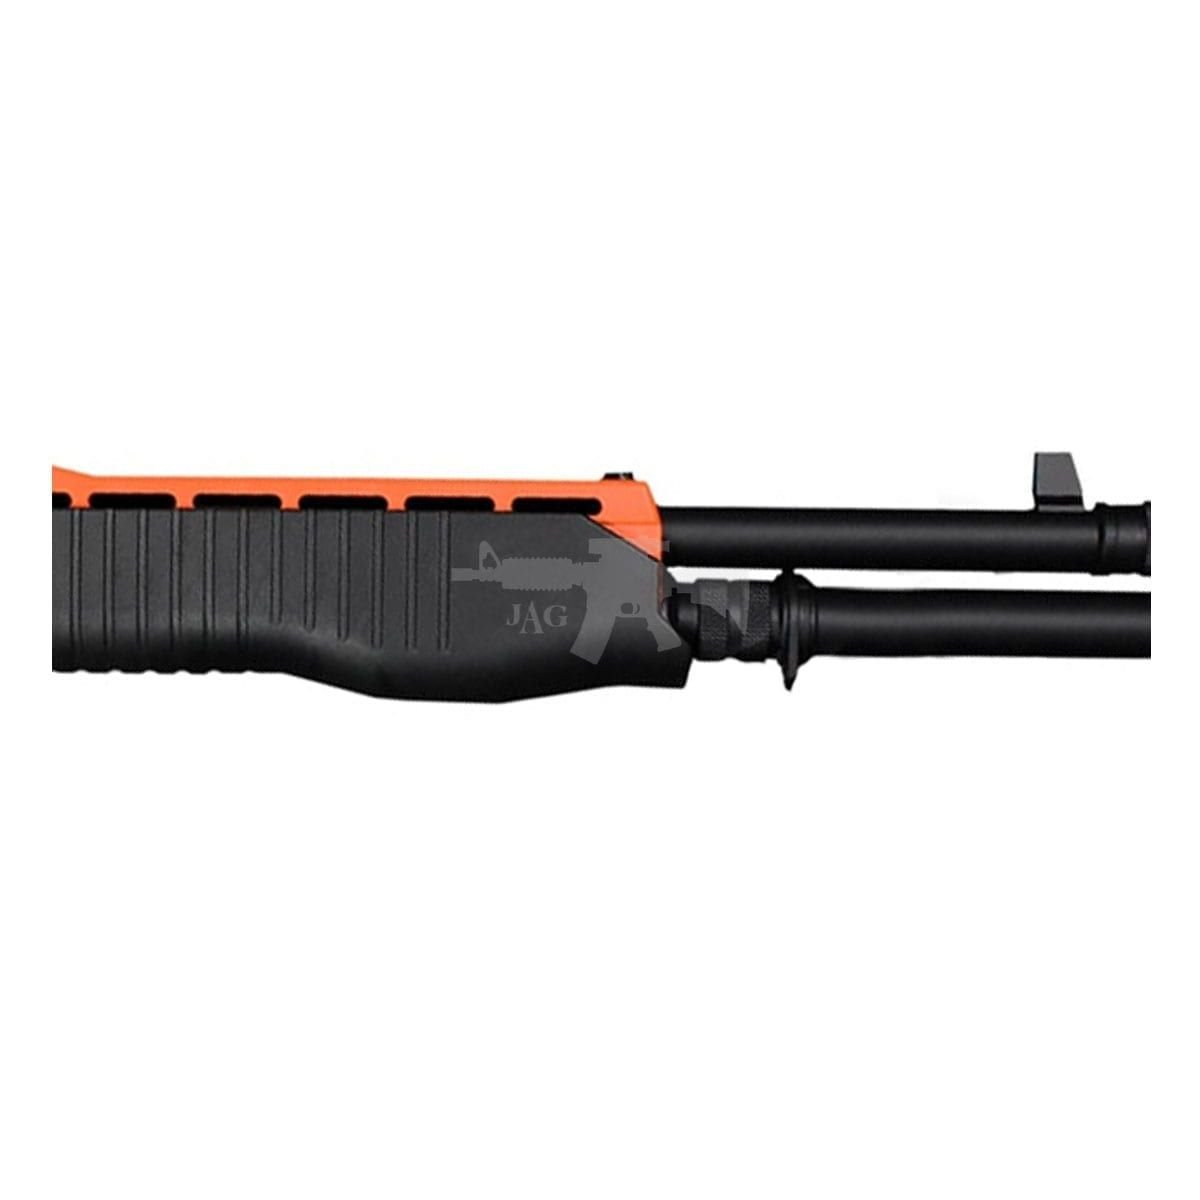 M63 TWO-TONE LIMITED EDITION MULTI-SHOT SPRING AIRSOFT SHOTGUN